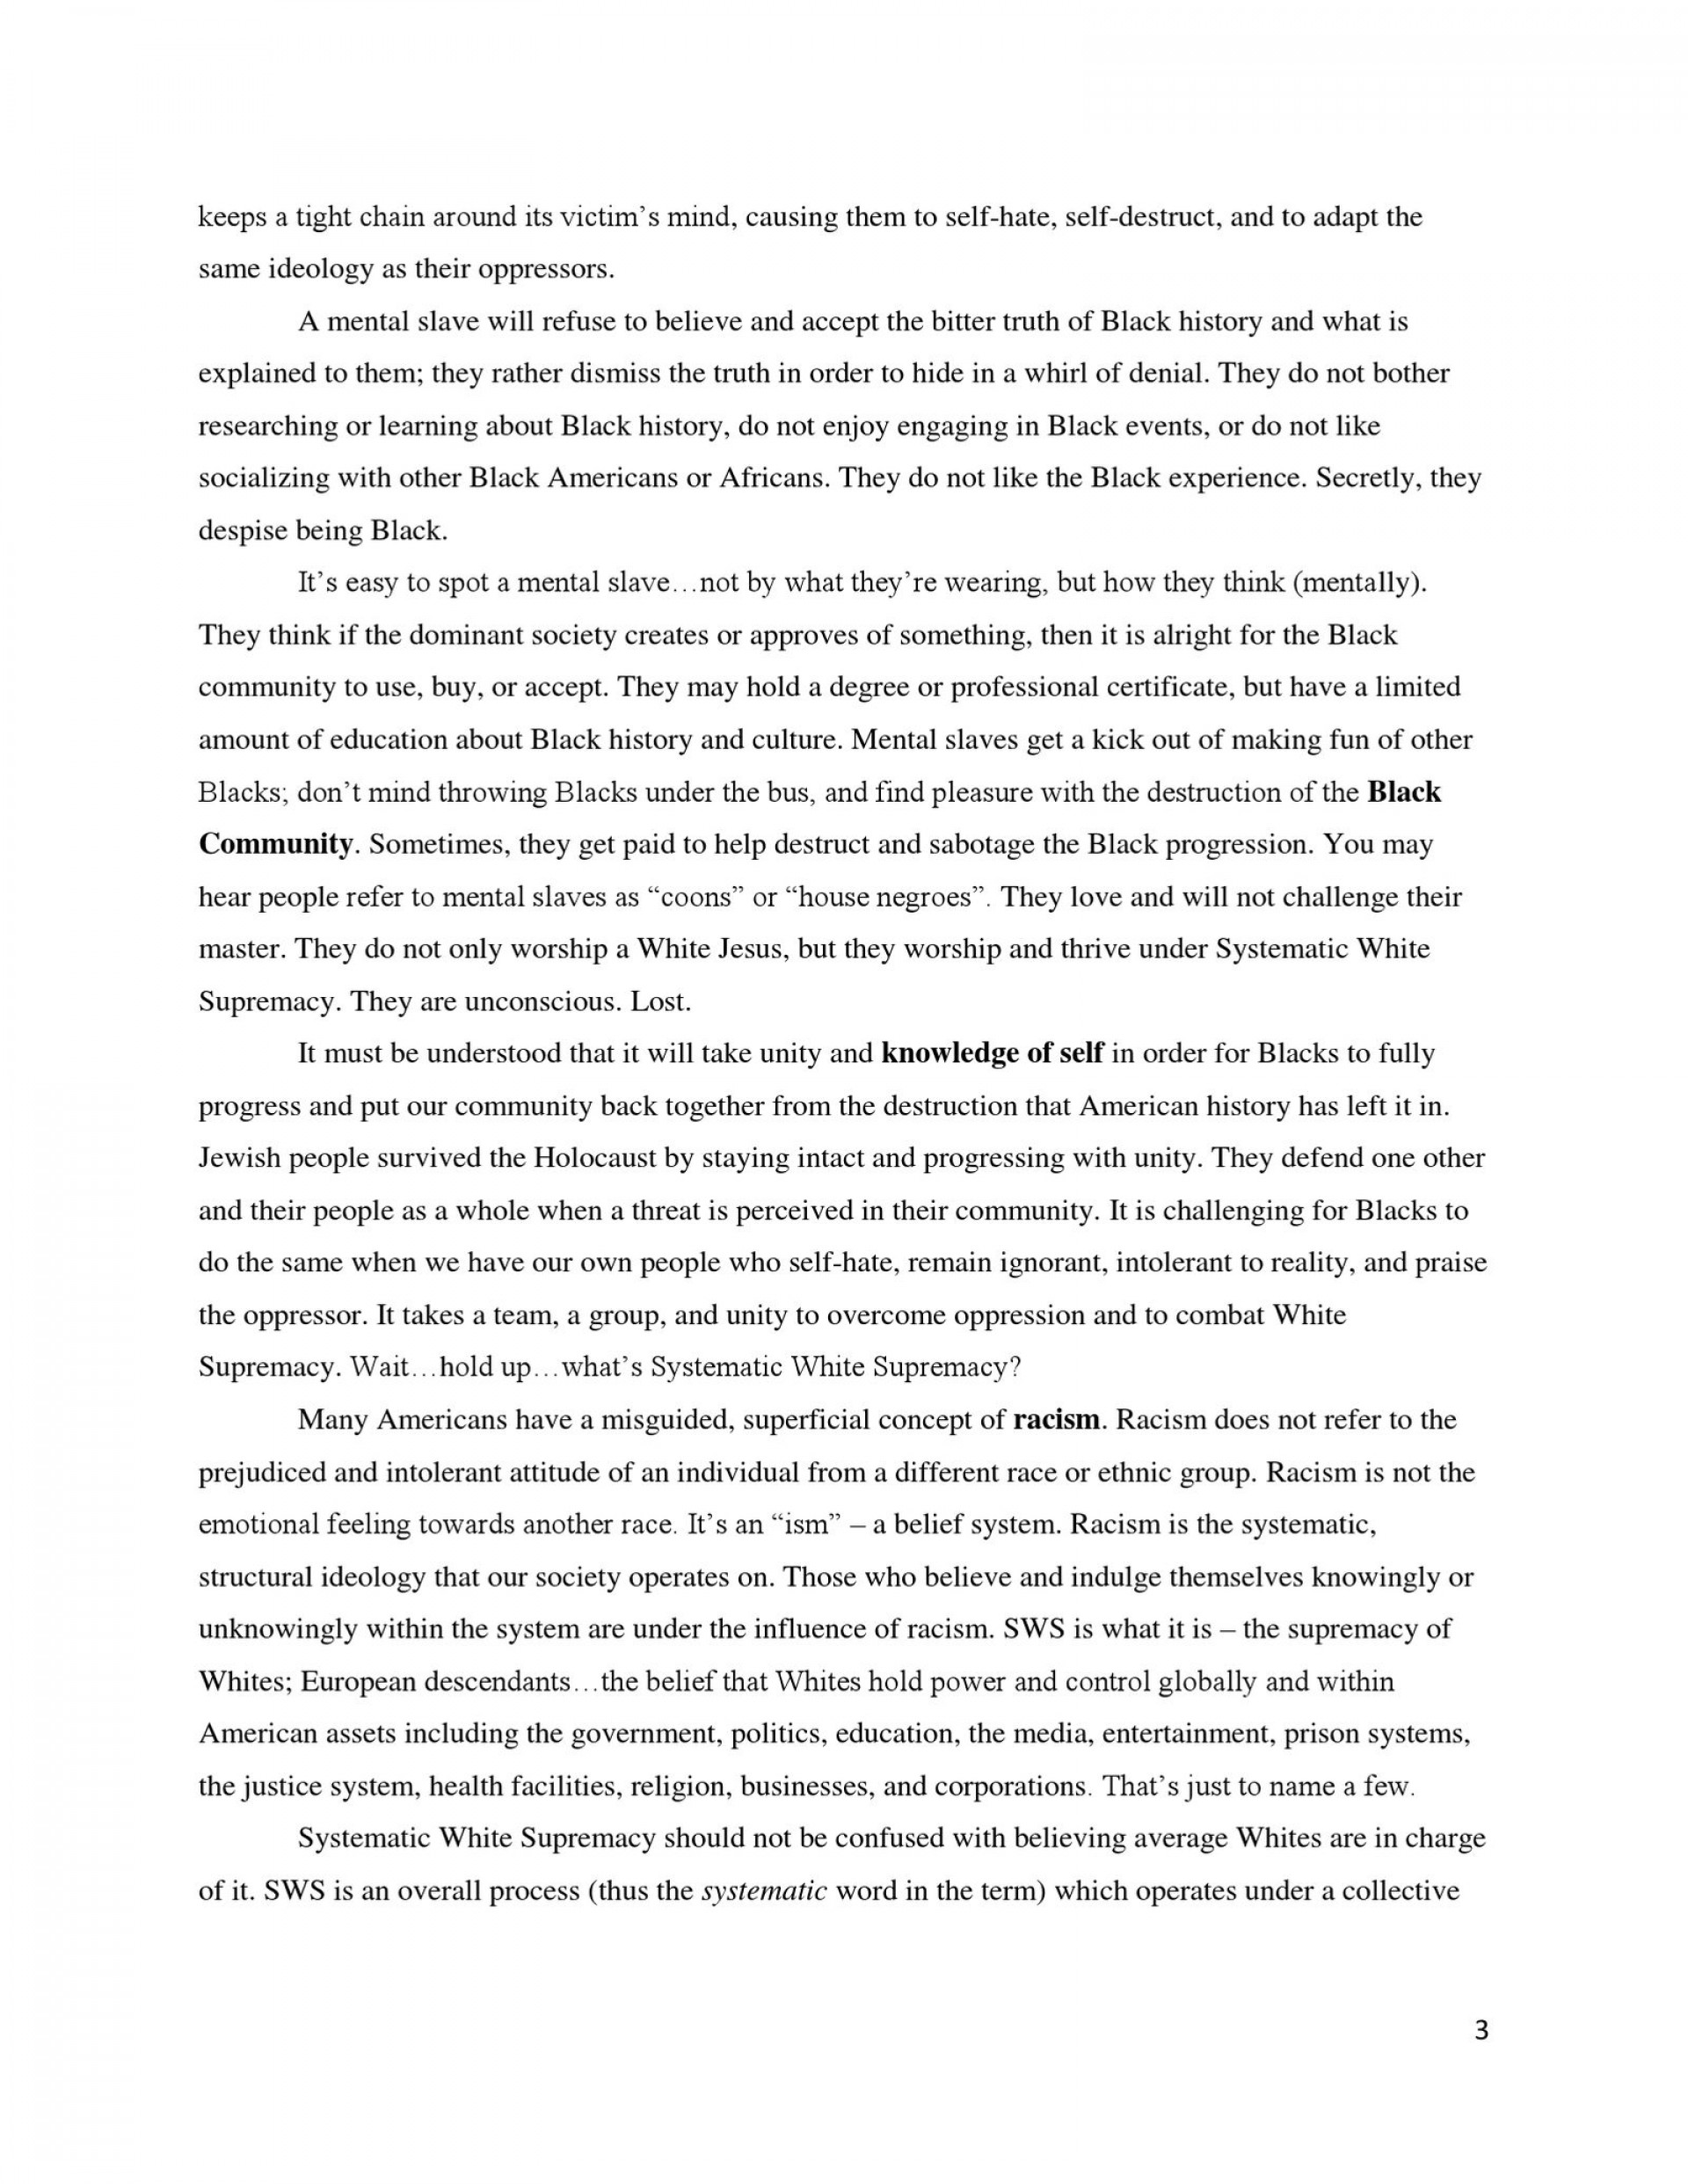 022 Racism Argumentative Essay Large Fantastic Topics Examples In Sports 1920